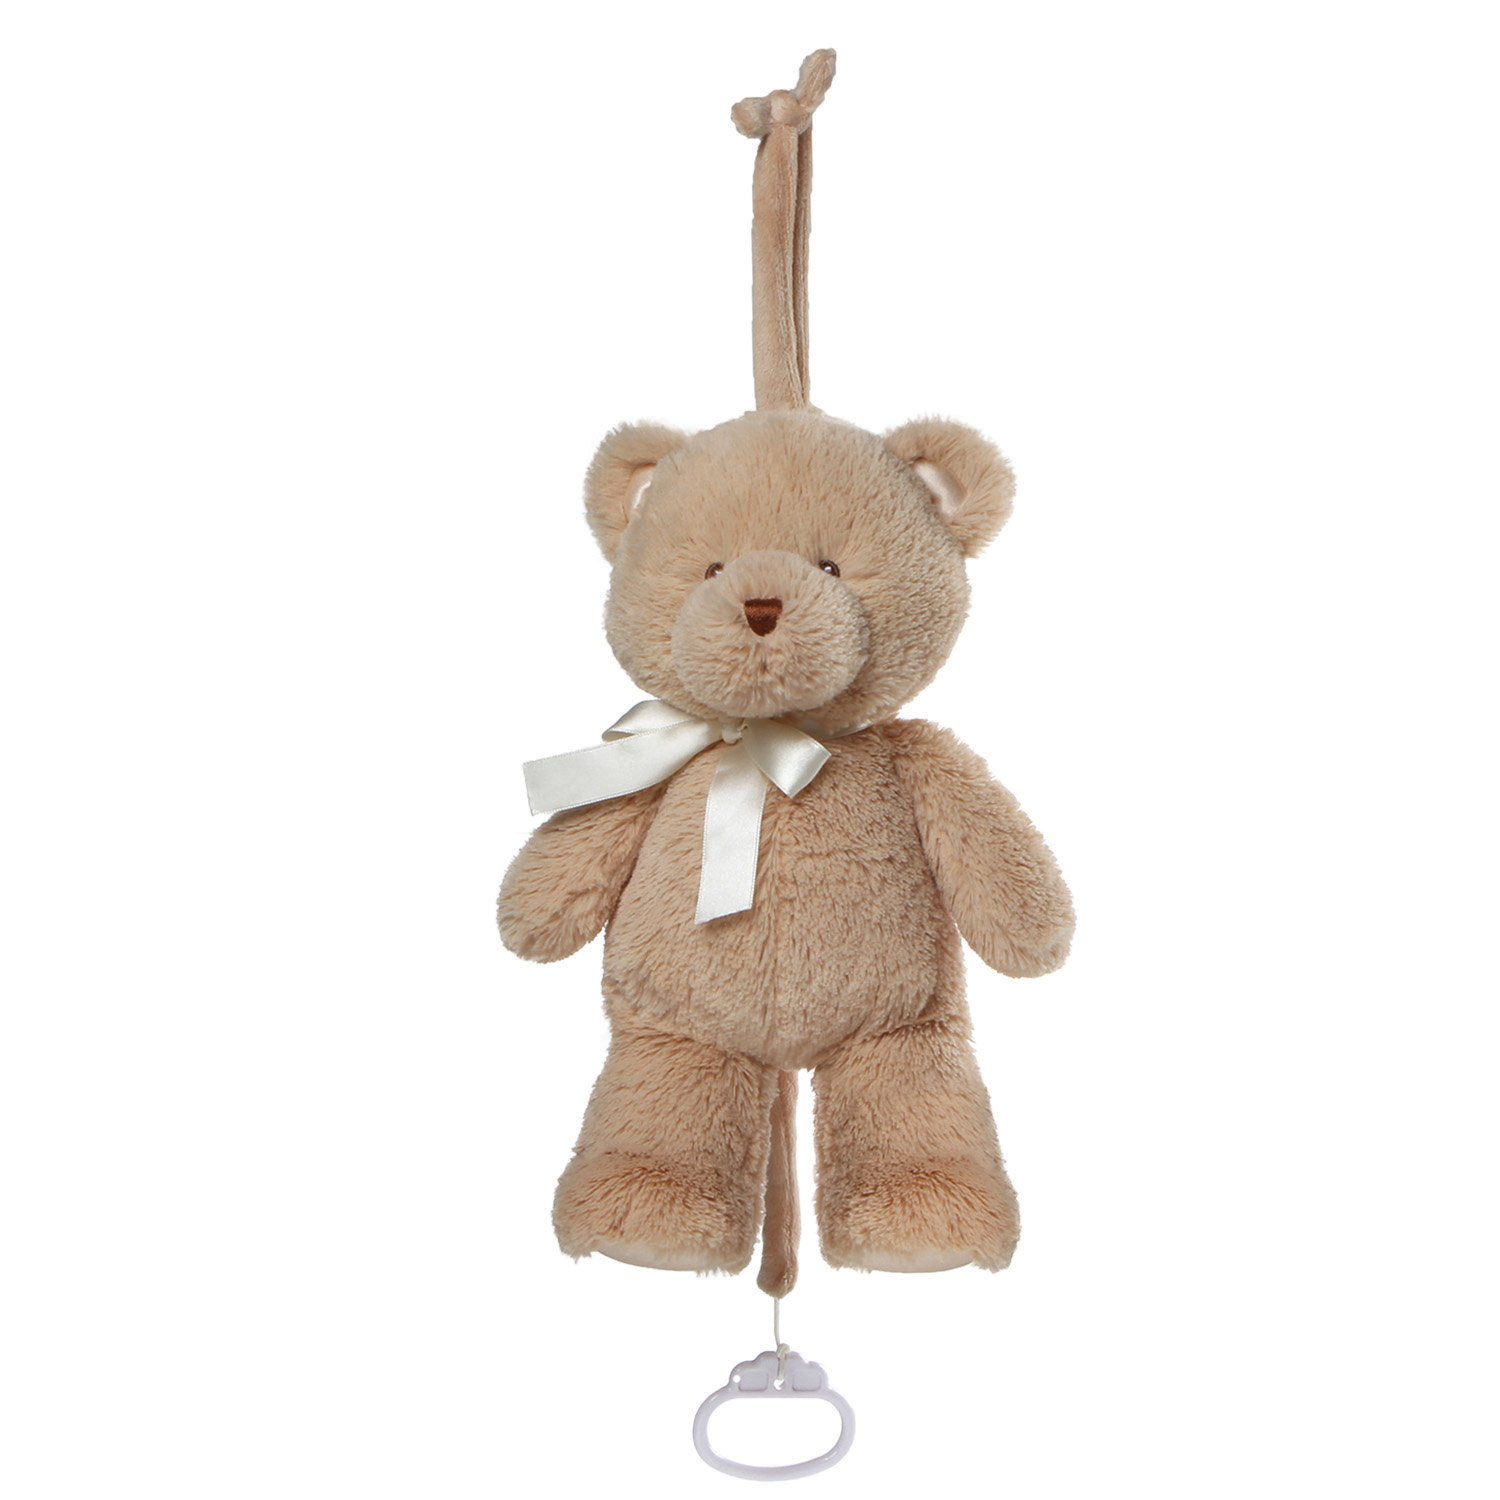 Baby GUND My First Teddy Musical Lullaby Stuffed Animal Plush Pull Down, Brown, 10'' by GUND